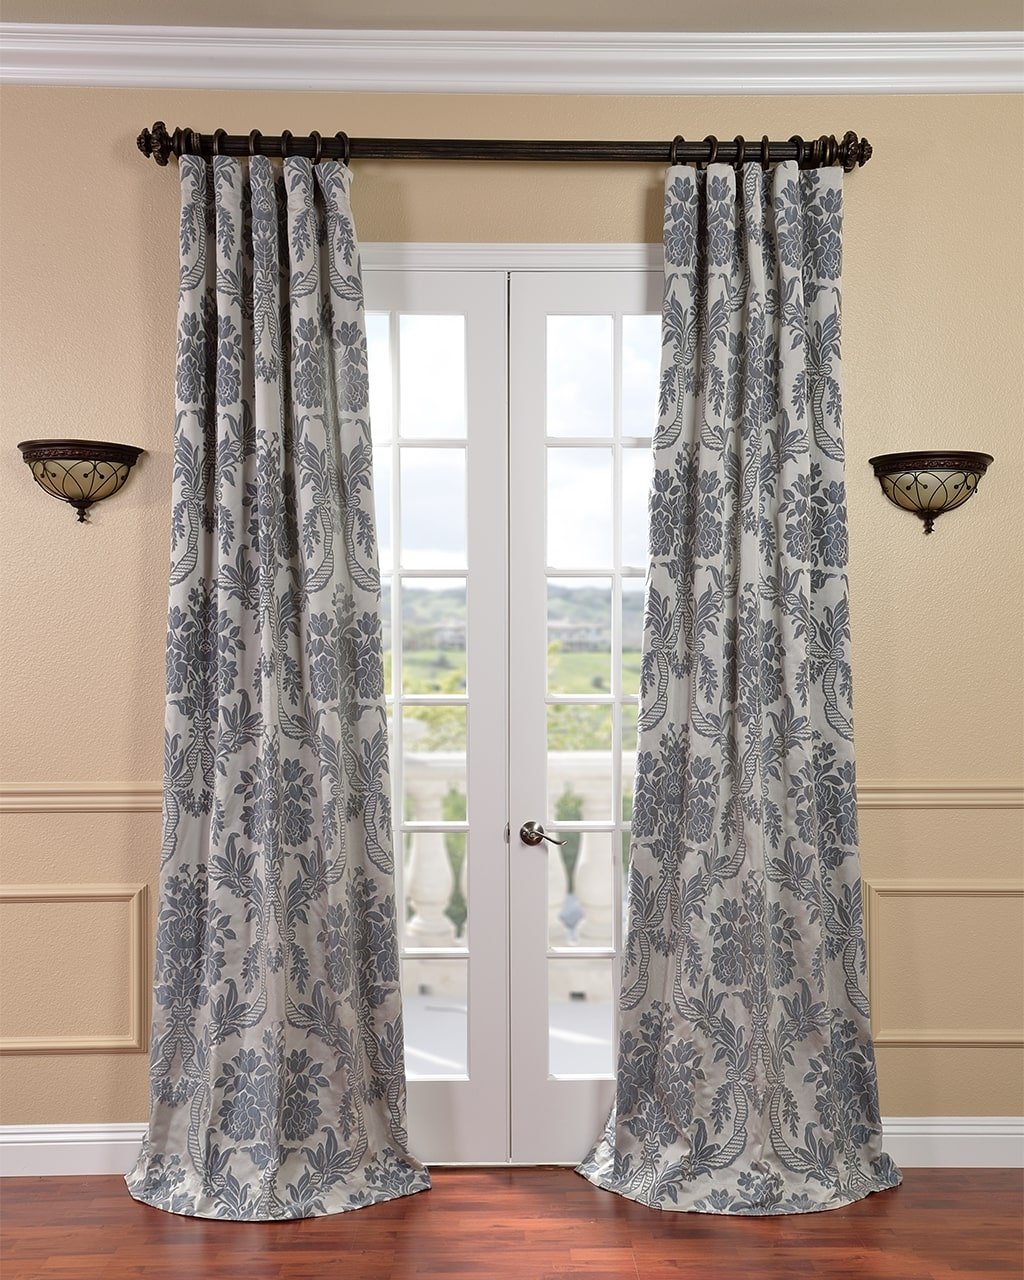 120 Inches Curtains Drapes Shop The Best Brands Overstock Intended For Extra Long Thermal Curtains (Image 1 of 15)